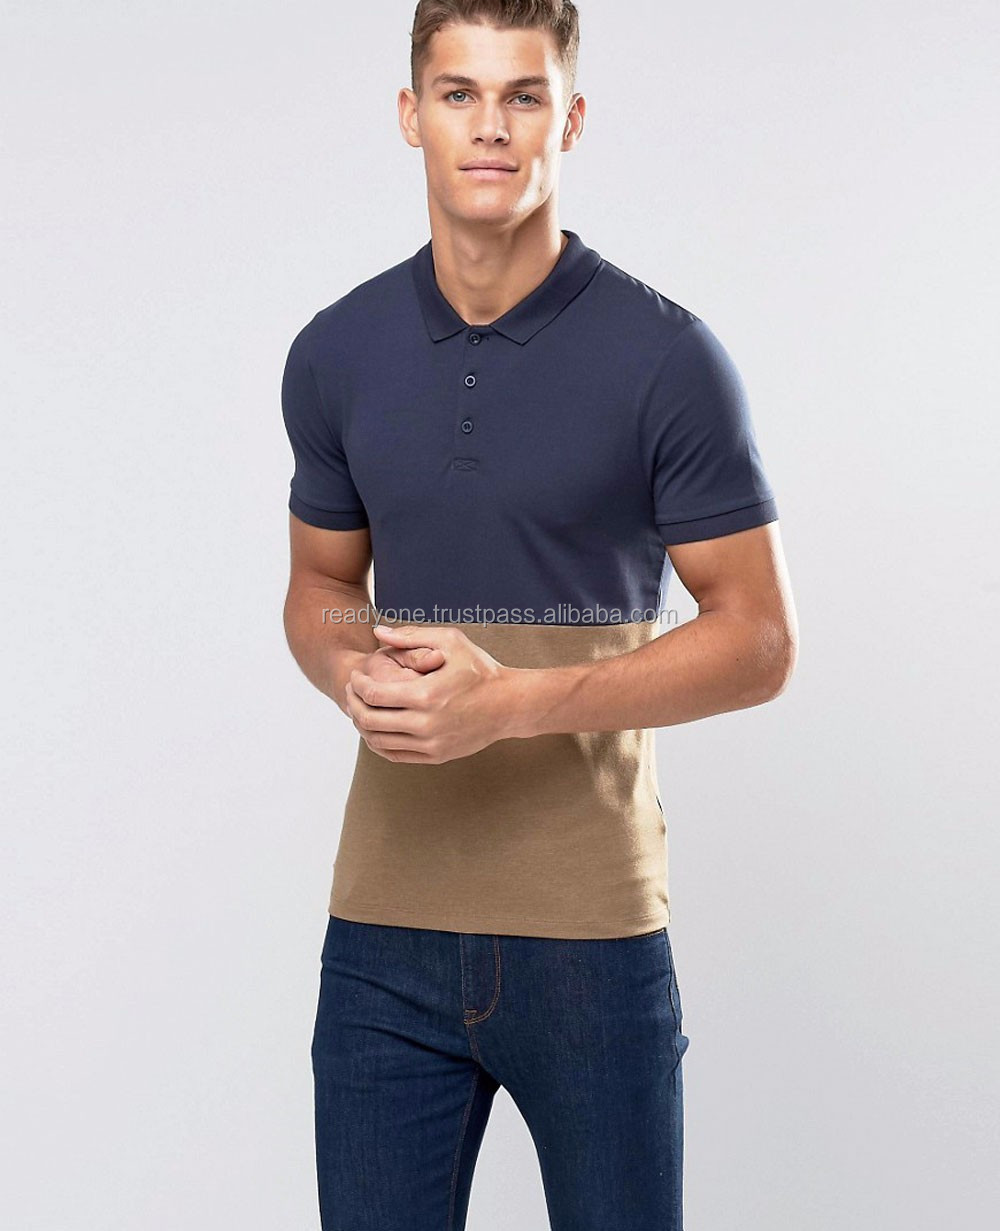 Wholesale cheap price custom mens polo shirt 100 cotton for Blank polo shirts for embroidery